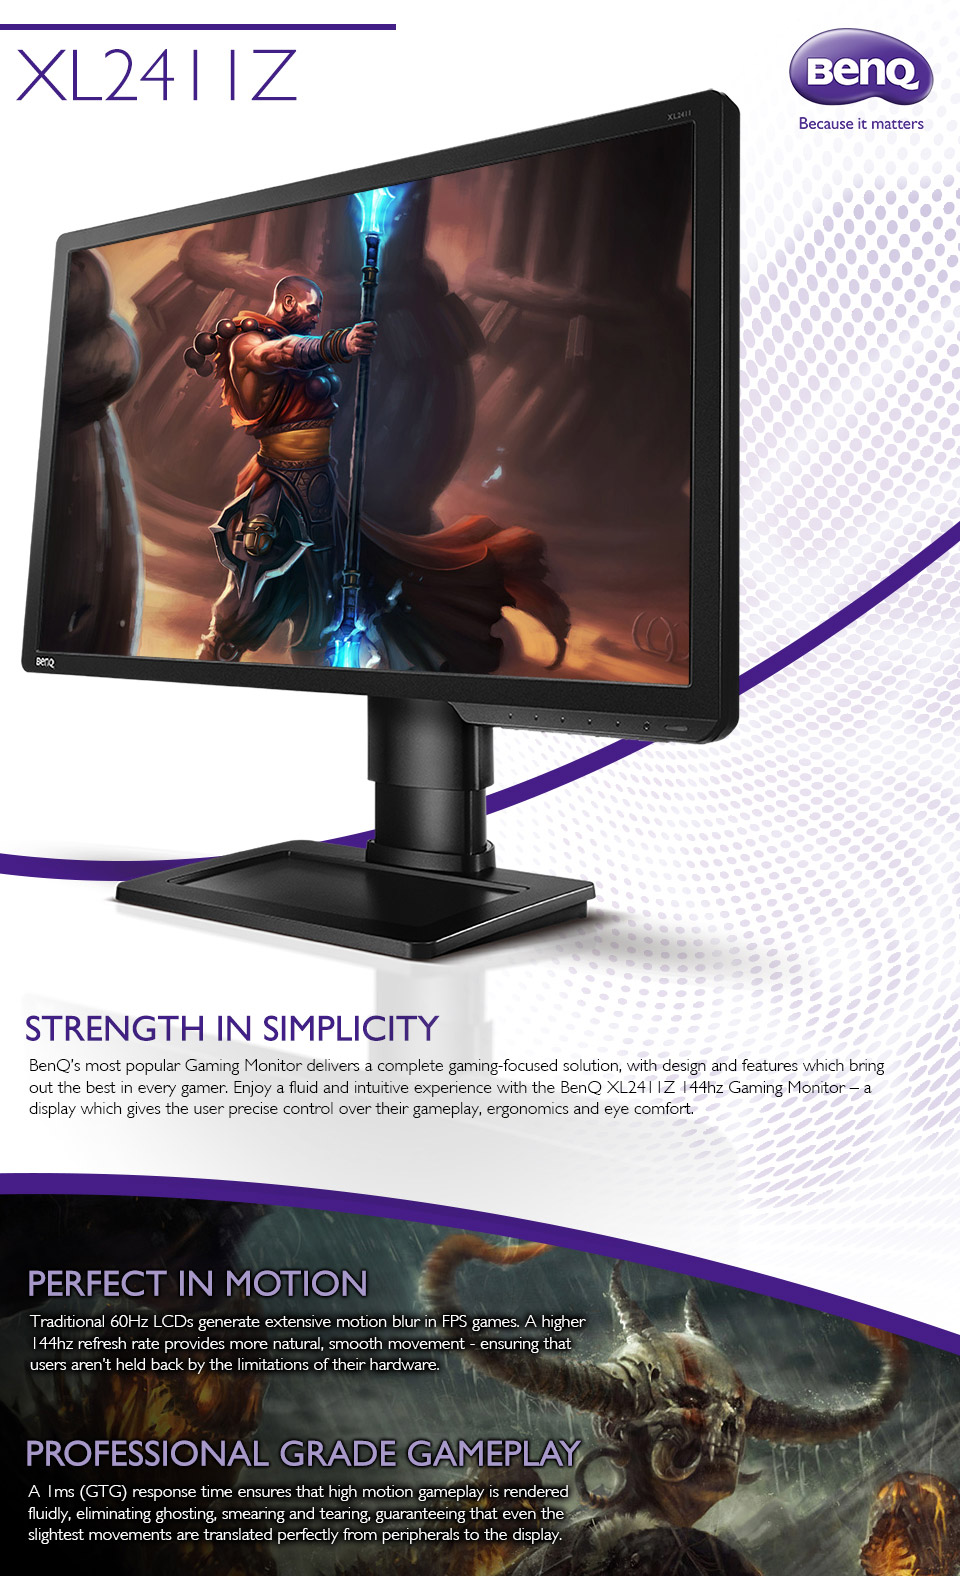 BenQ XL2411Z 24in LED 144Hz Gaming Monitor [XL2411Z] : PC